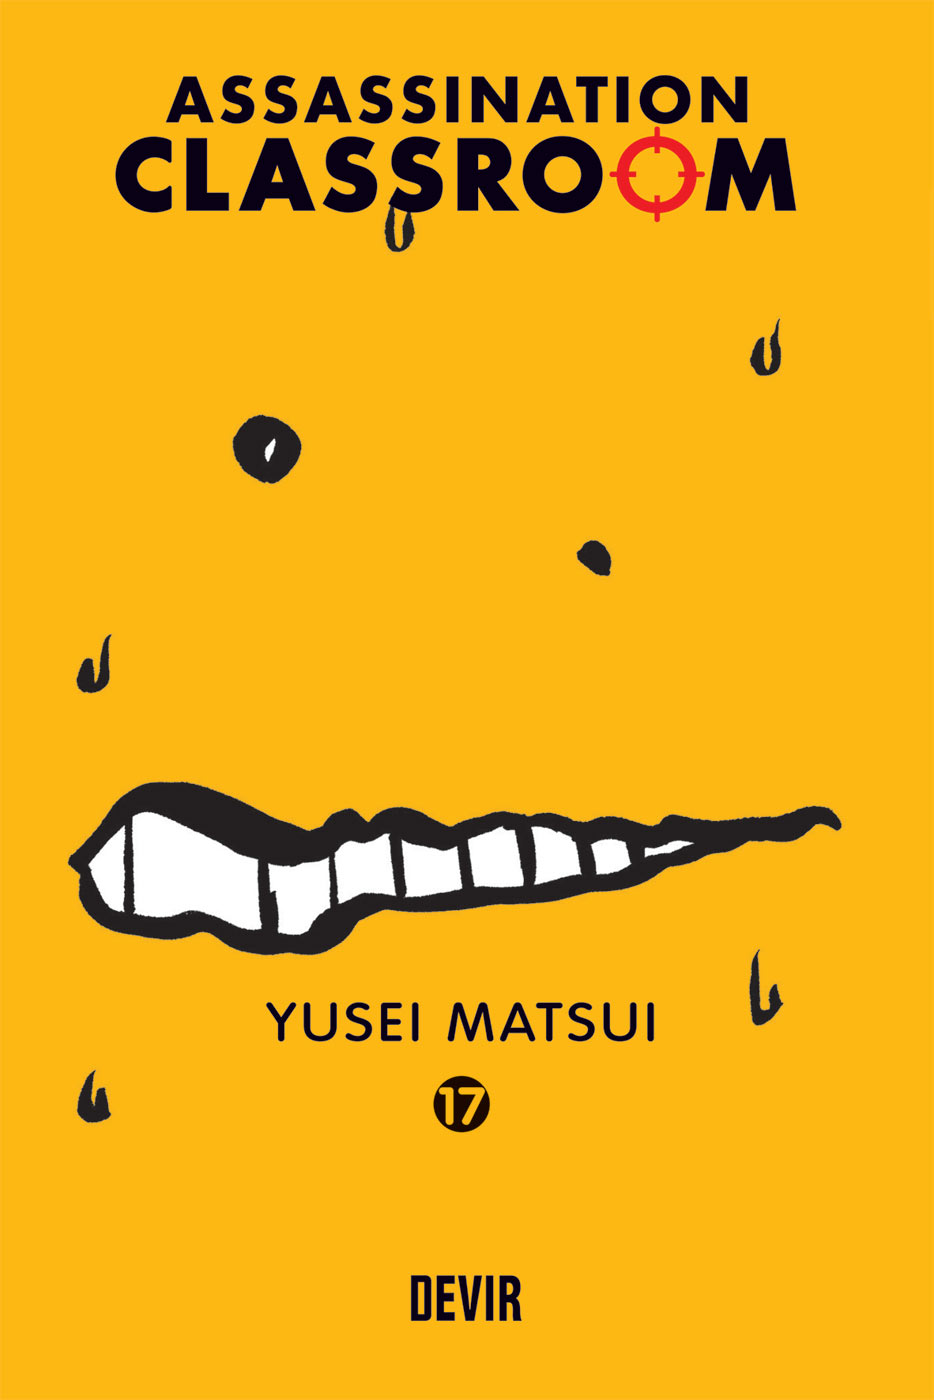 Assassination classroom 17